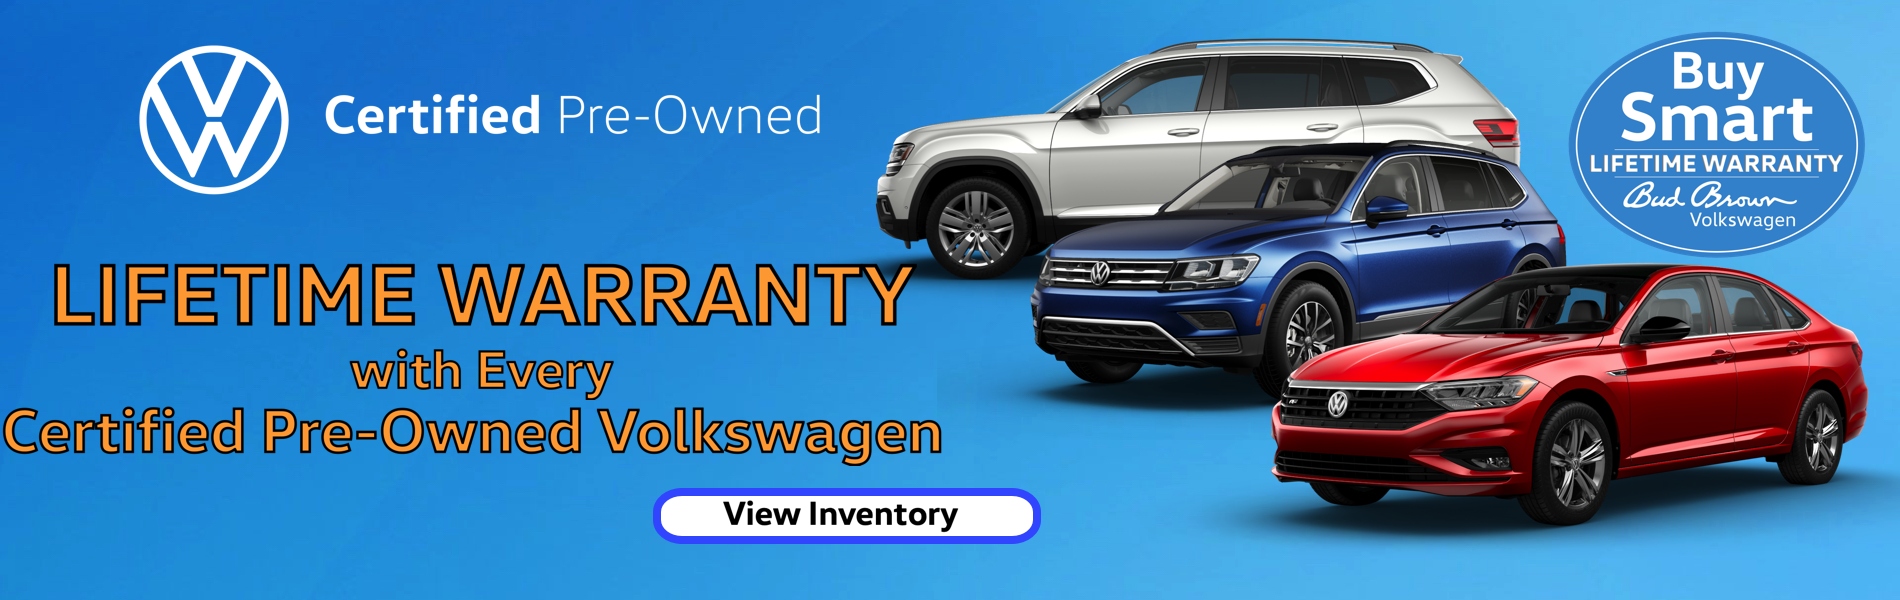 Exclusive Lifetime Warranty with every Certified VW Only at Bud Brown